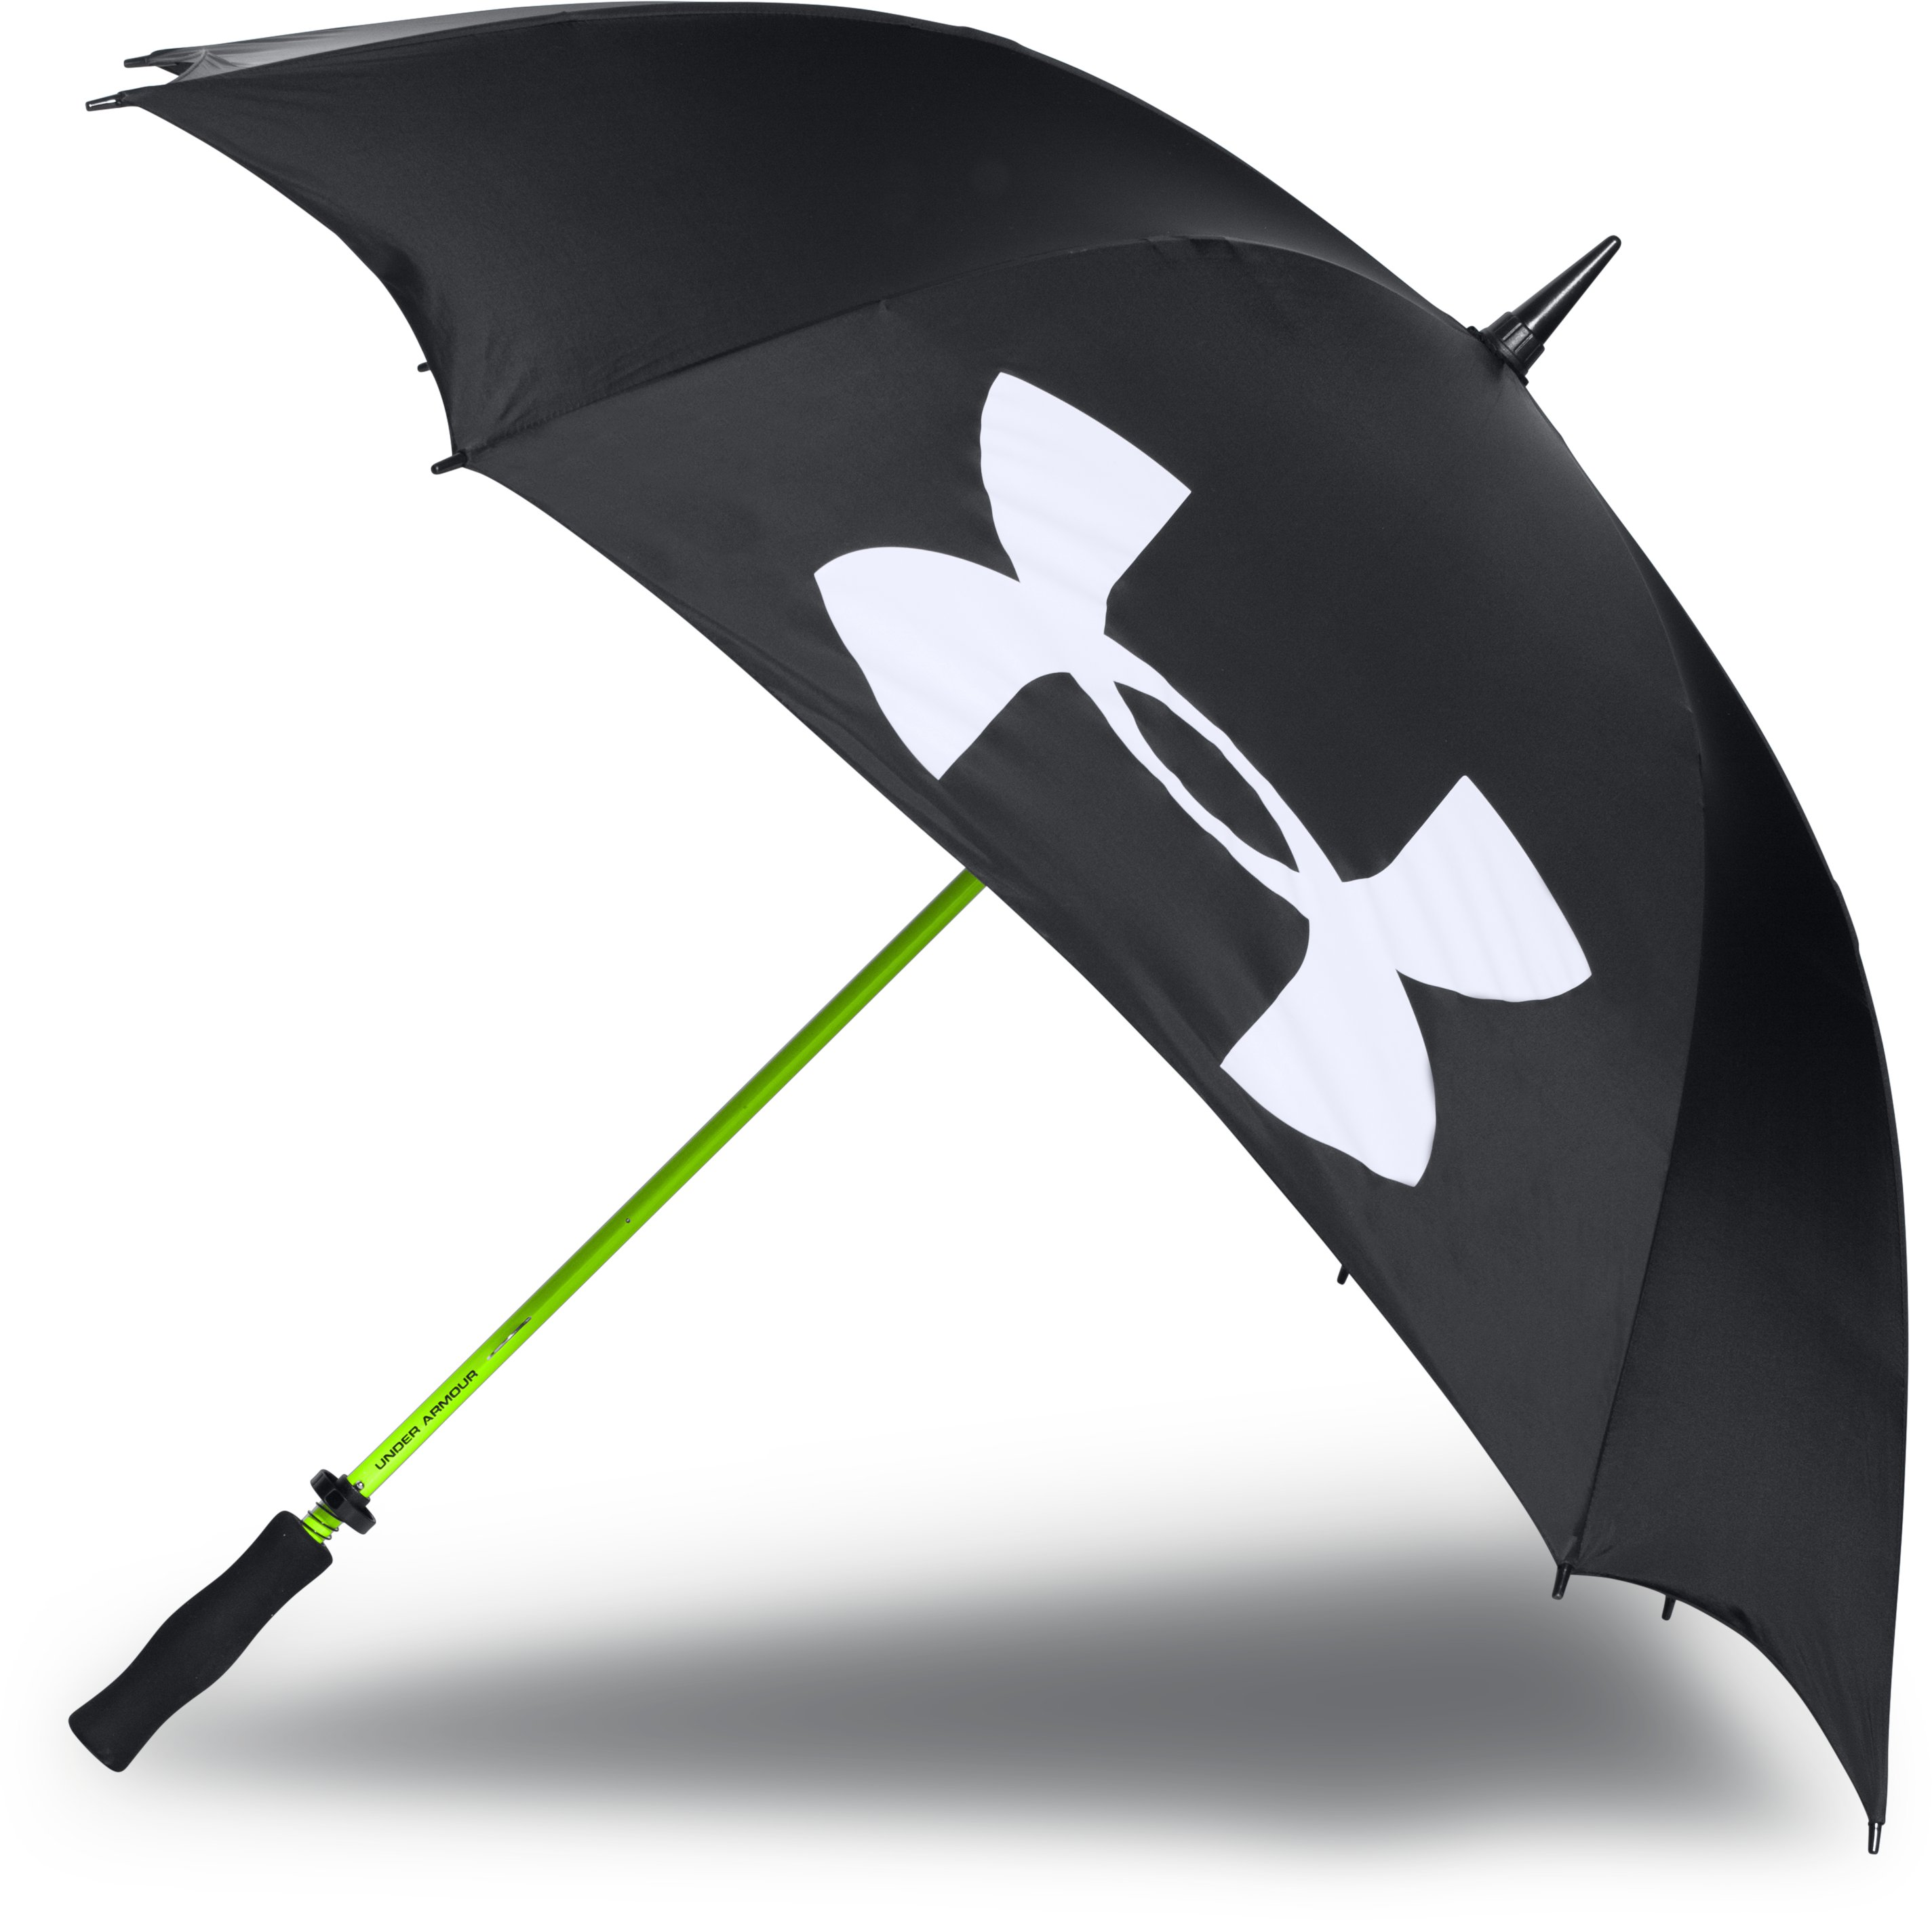 travel water bottles UA Golf Umbrella – Single Canopy <strong>Looks</strong> great, works great!